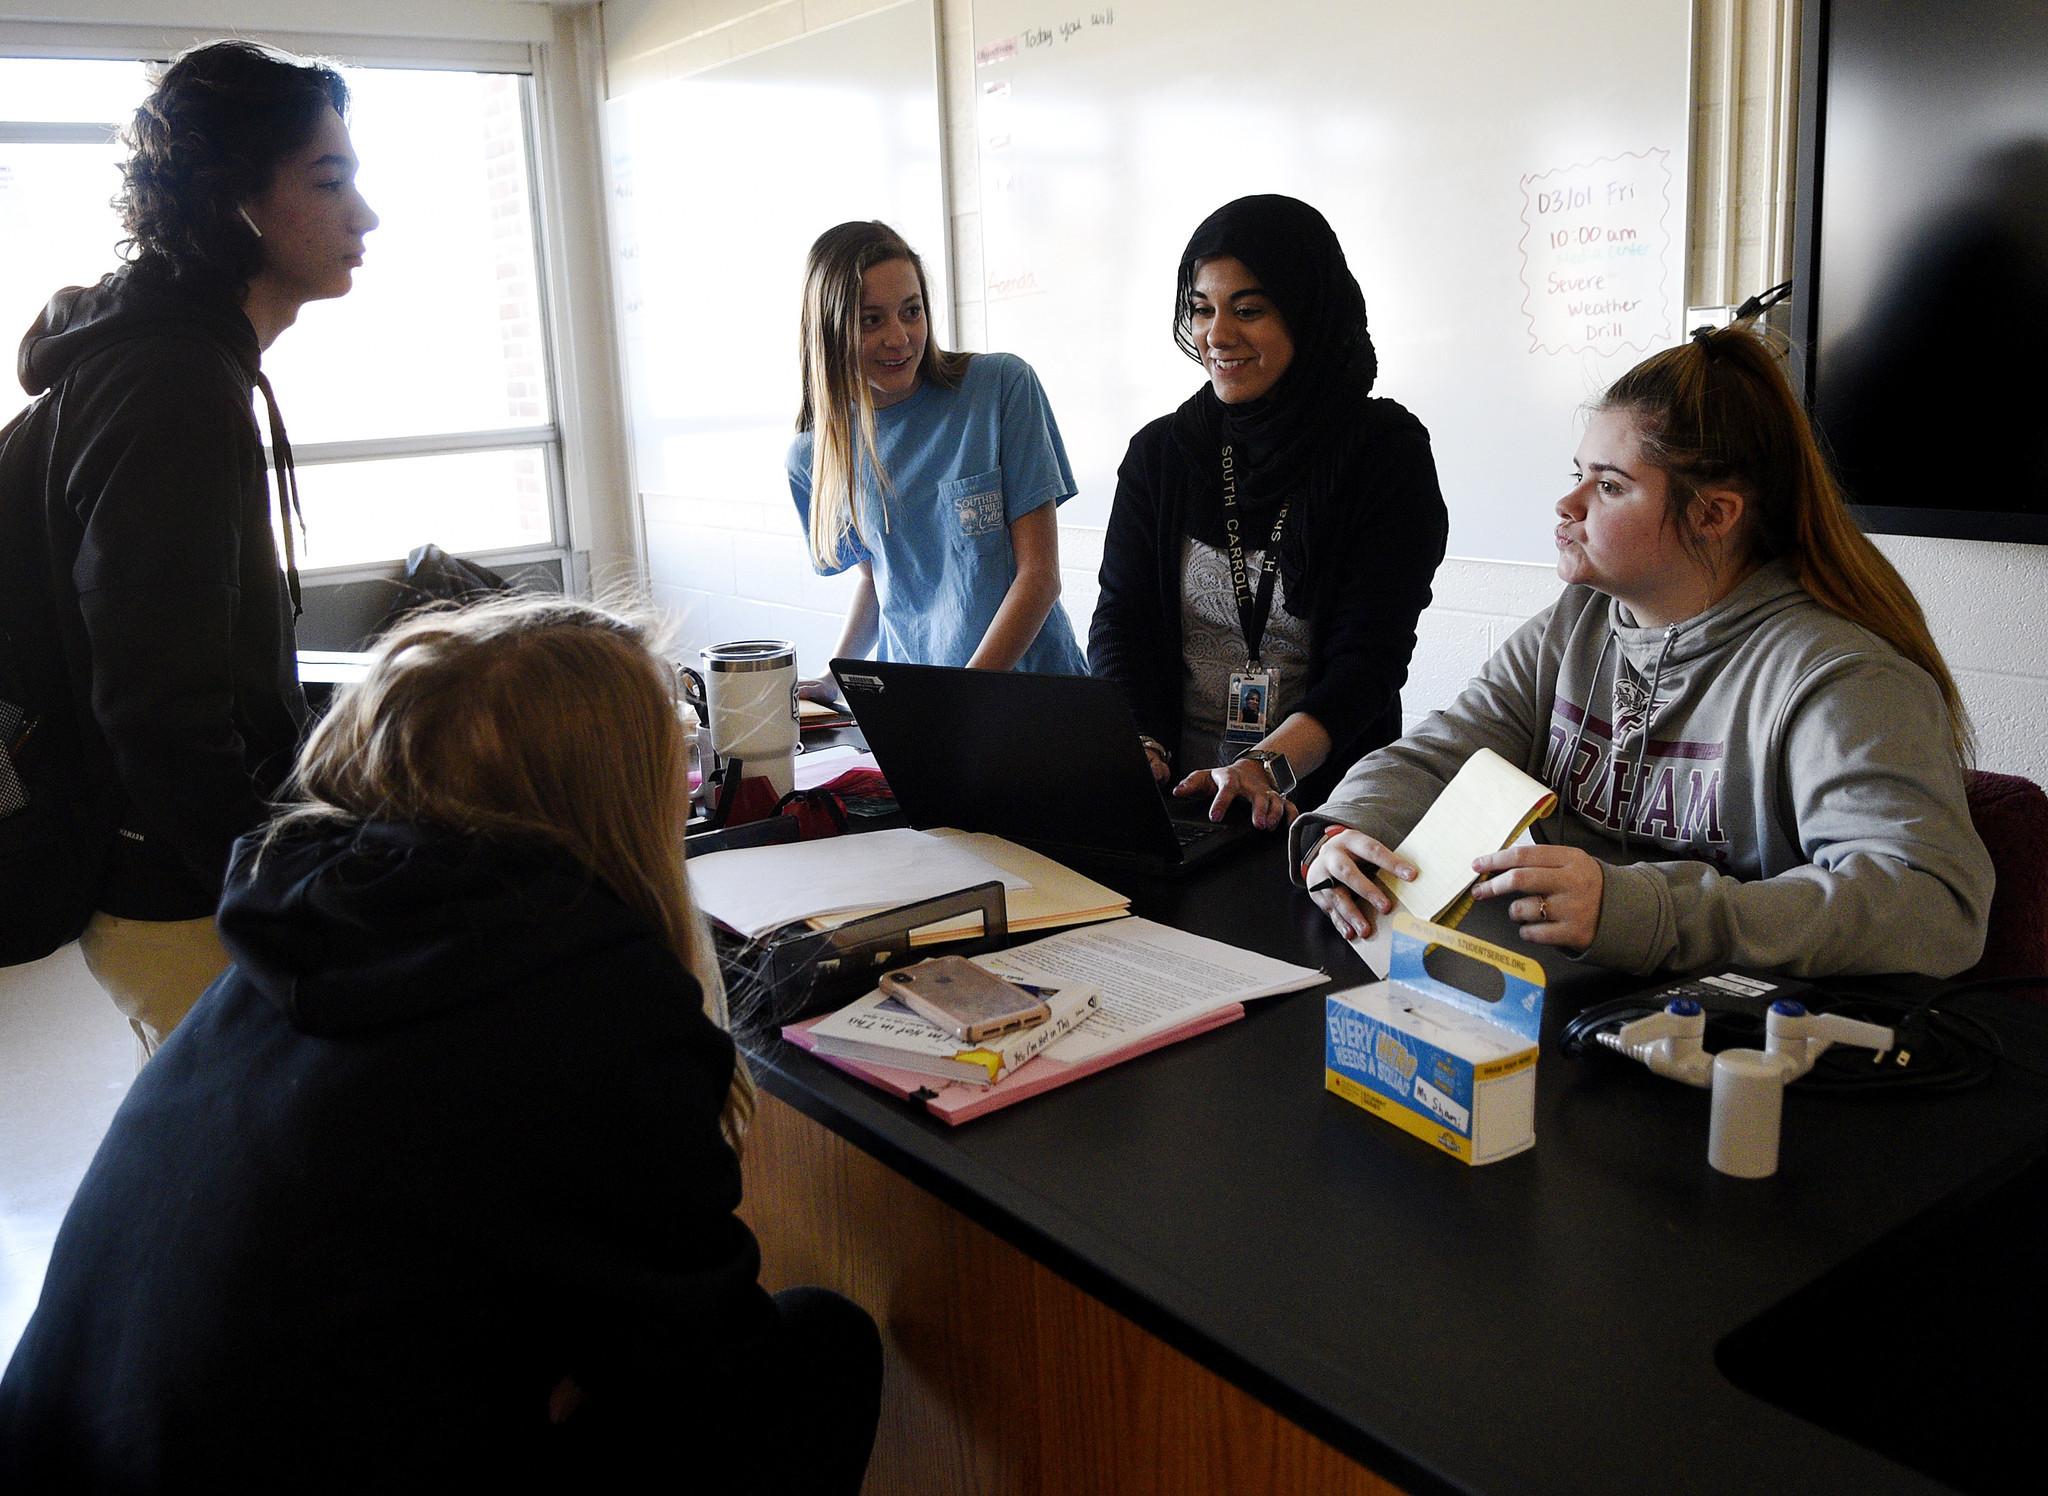 Muslim teacher bridges gap to share culture and diversity at